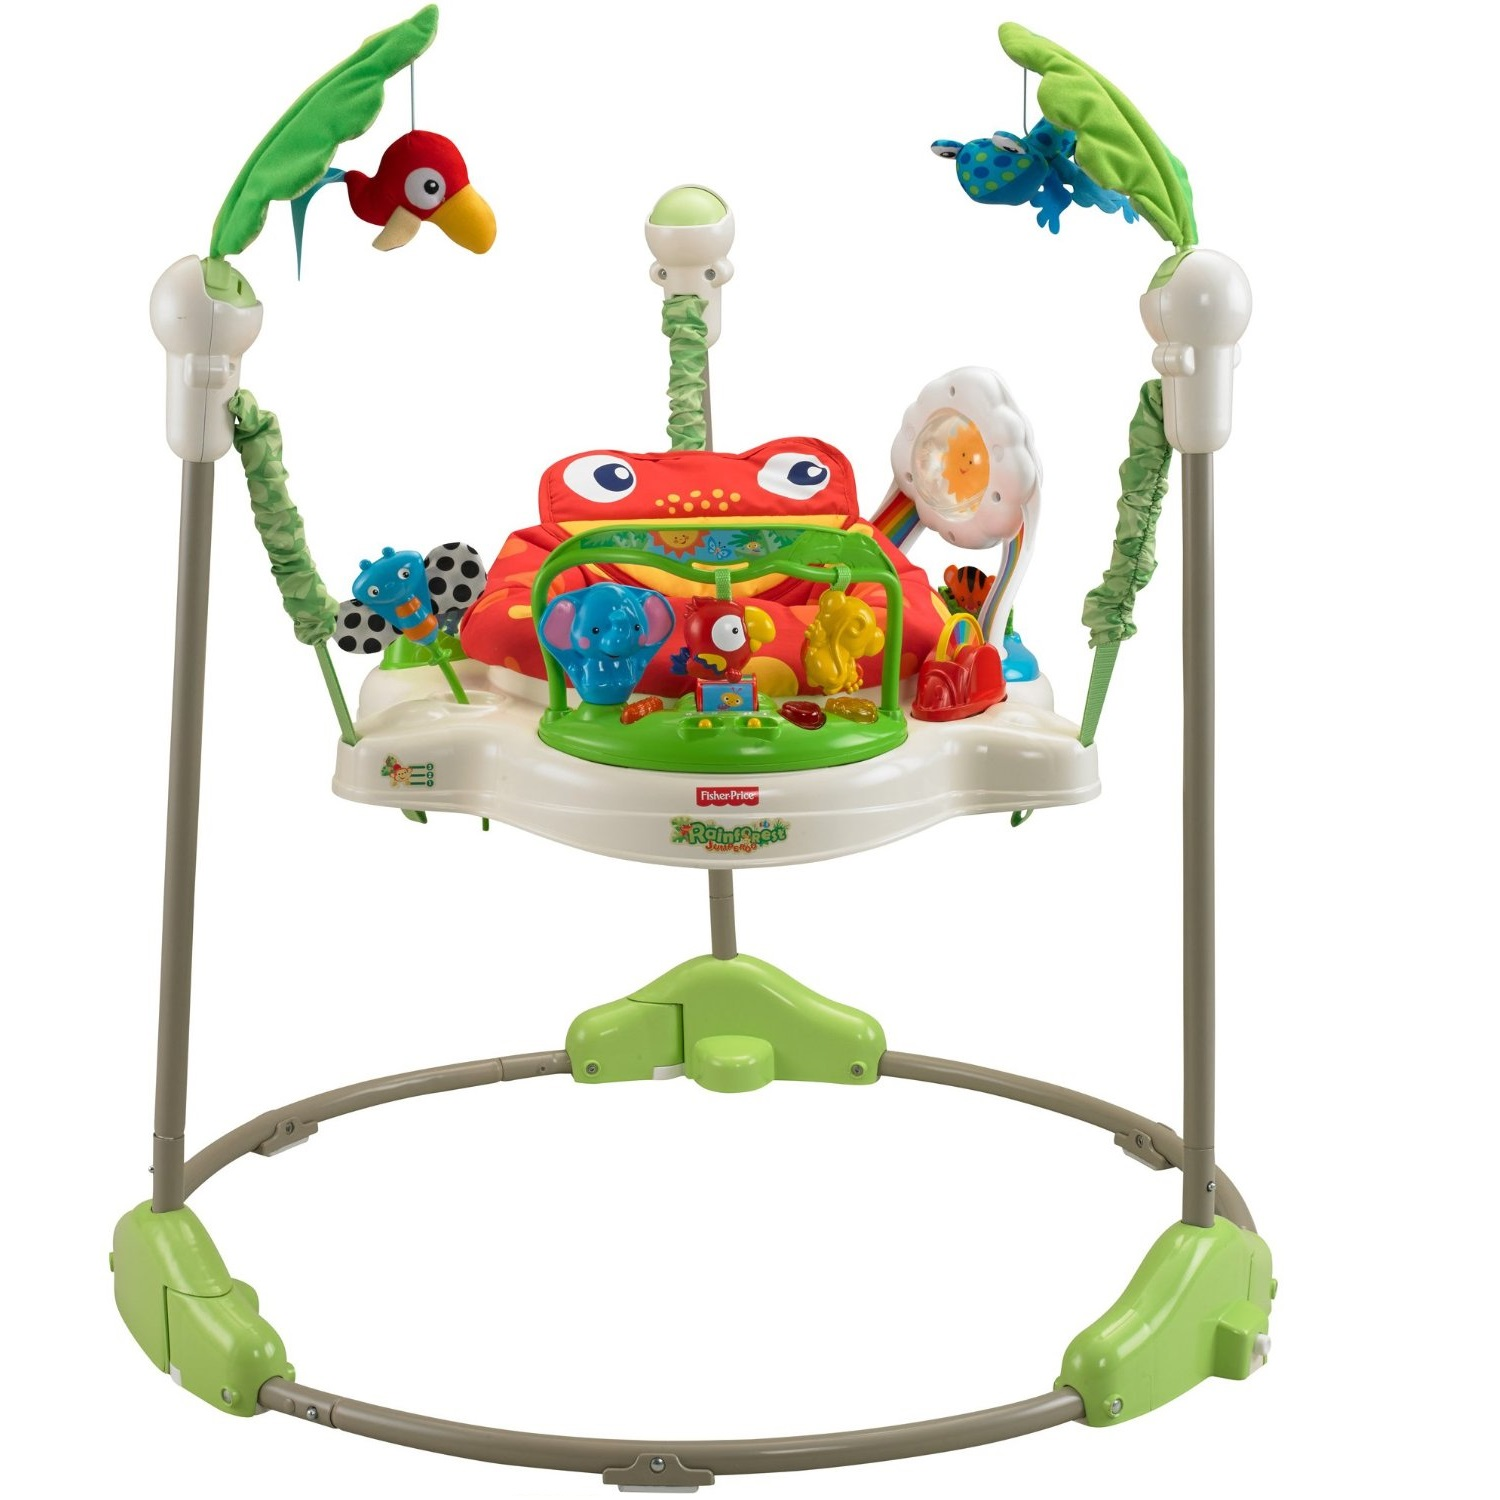 Ghế tập đứng Fisher-Price Rainforest Jumperoo